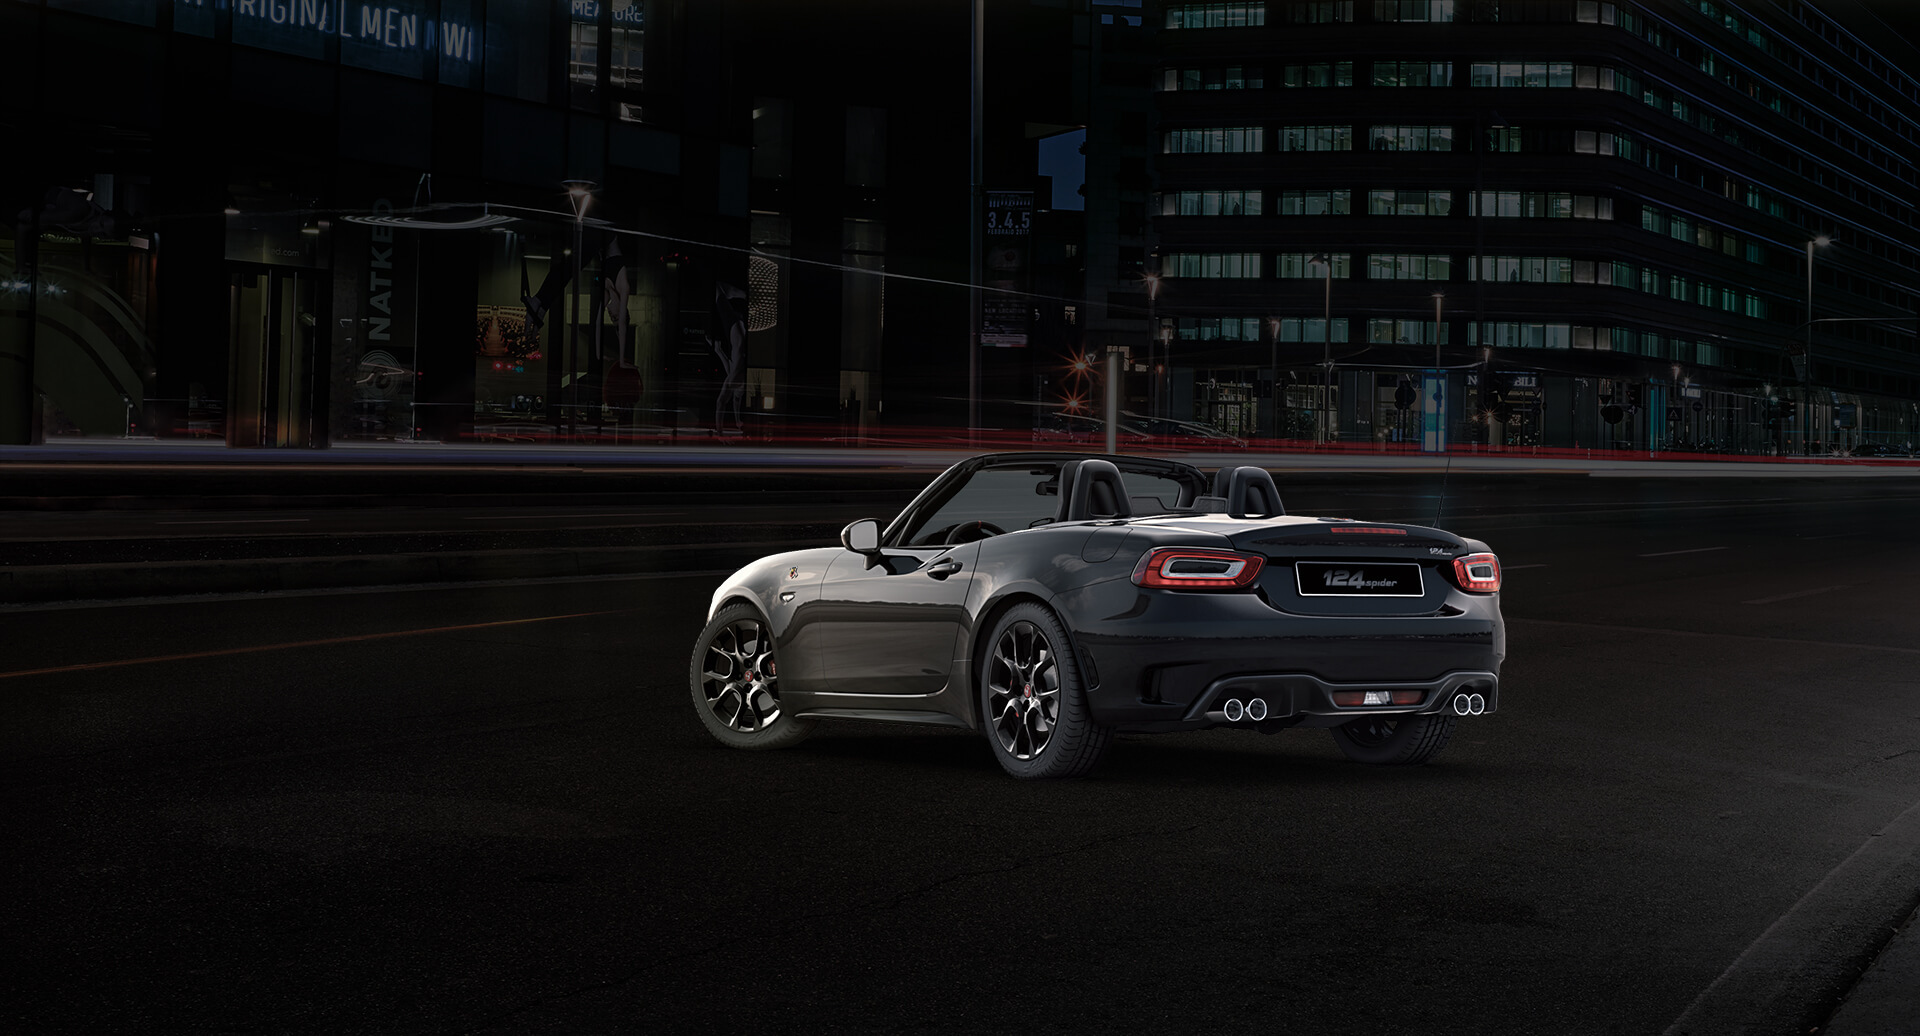 Lateral Abarth 124 spider negro